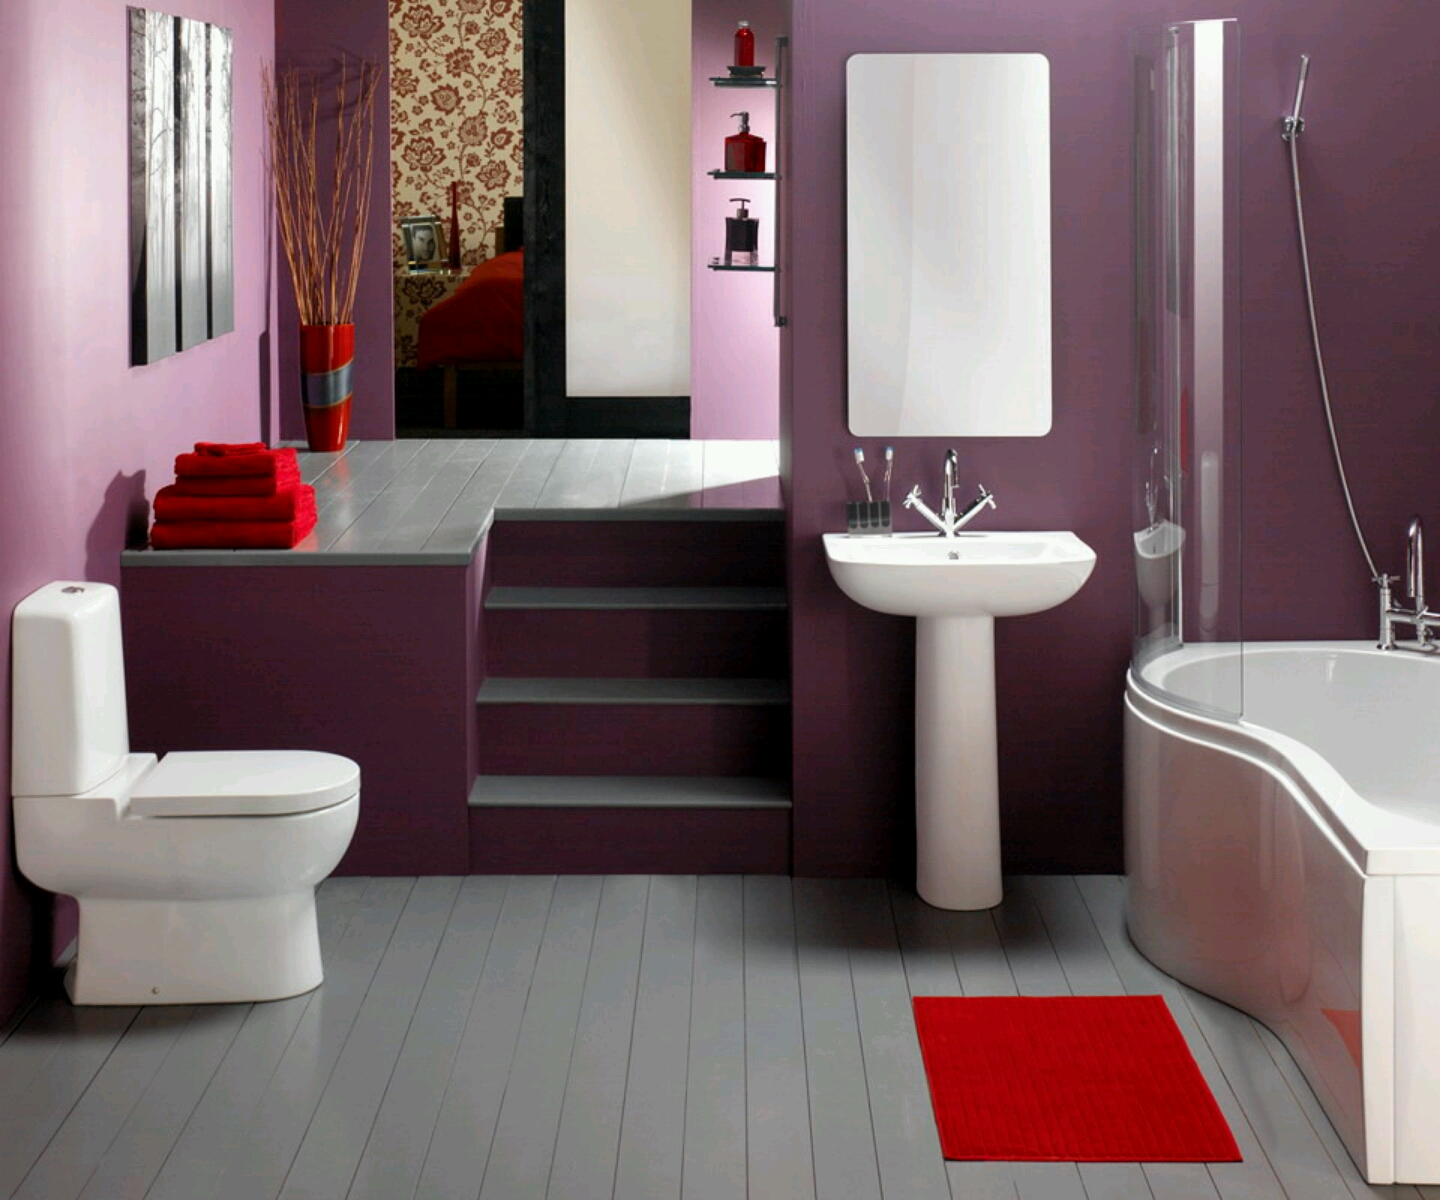 New home designs latest luxury modern bathrooms designs for Bathroom decorating ideas pictures